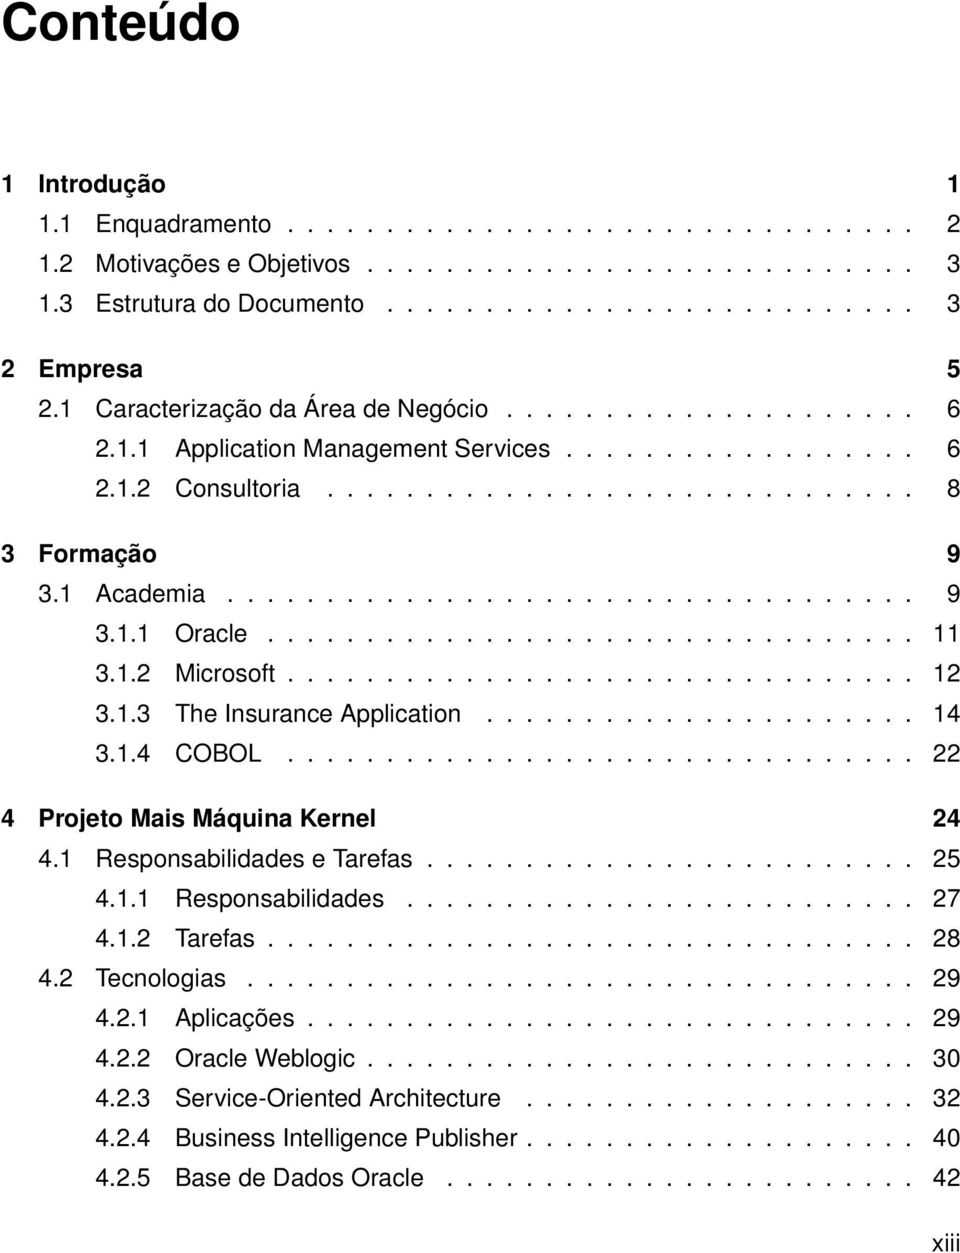 ................................ 11 3.1.2 Microsoft................................ 12 3.1.3 The Insurance Application...................... 14 3.1.4 COBOL................................ 22 4 Projeto Mais Máquina Kernel 24 4.